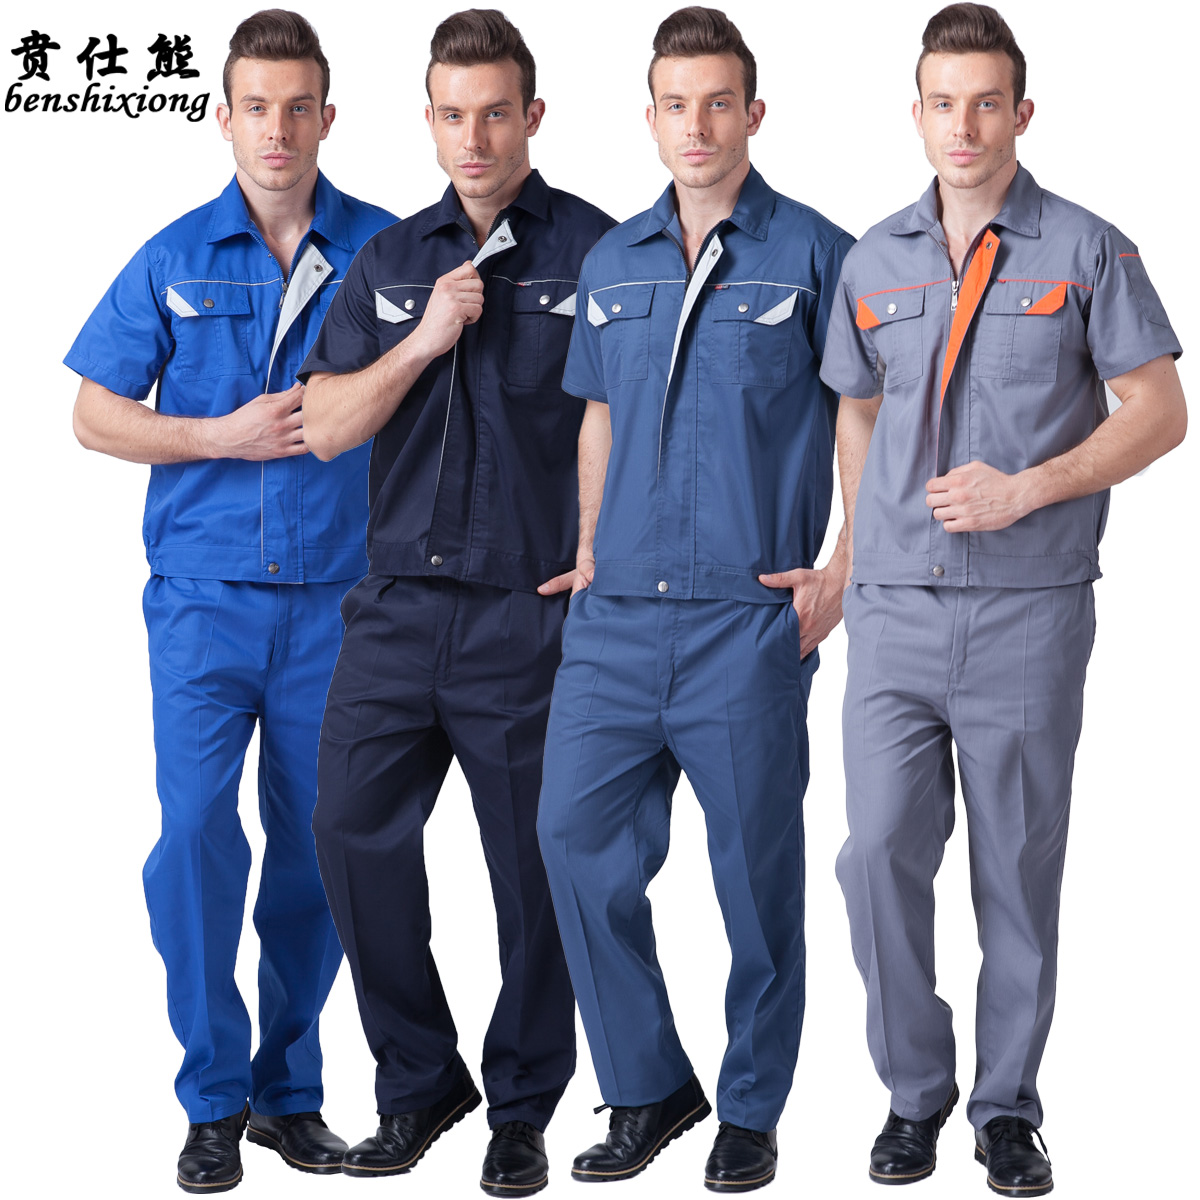 10sets Set Tooling Uniform Protective Clothing Male Workwear Repairman Uniforms Full Set